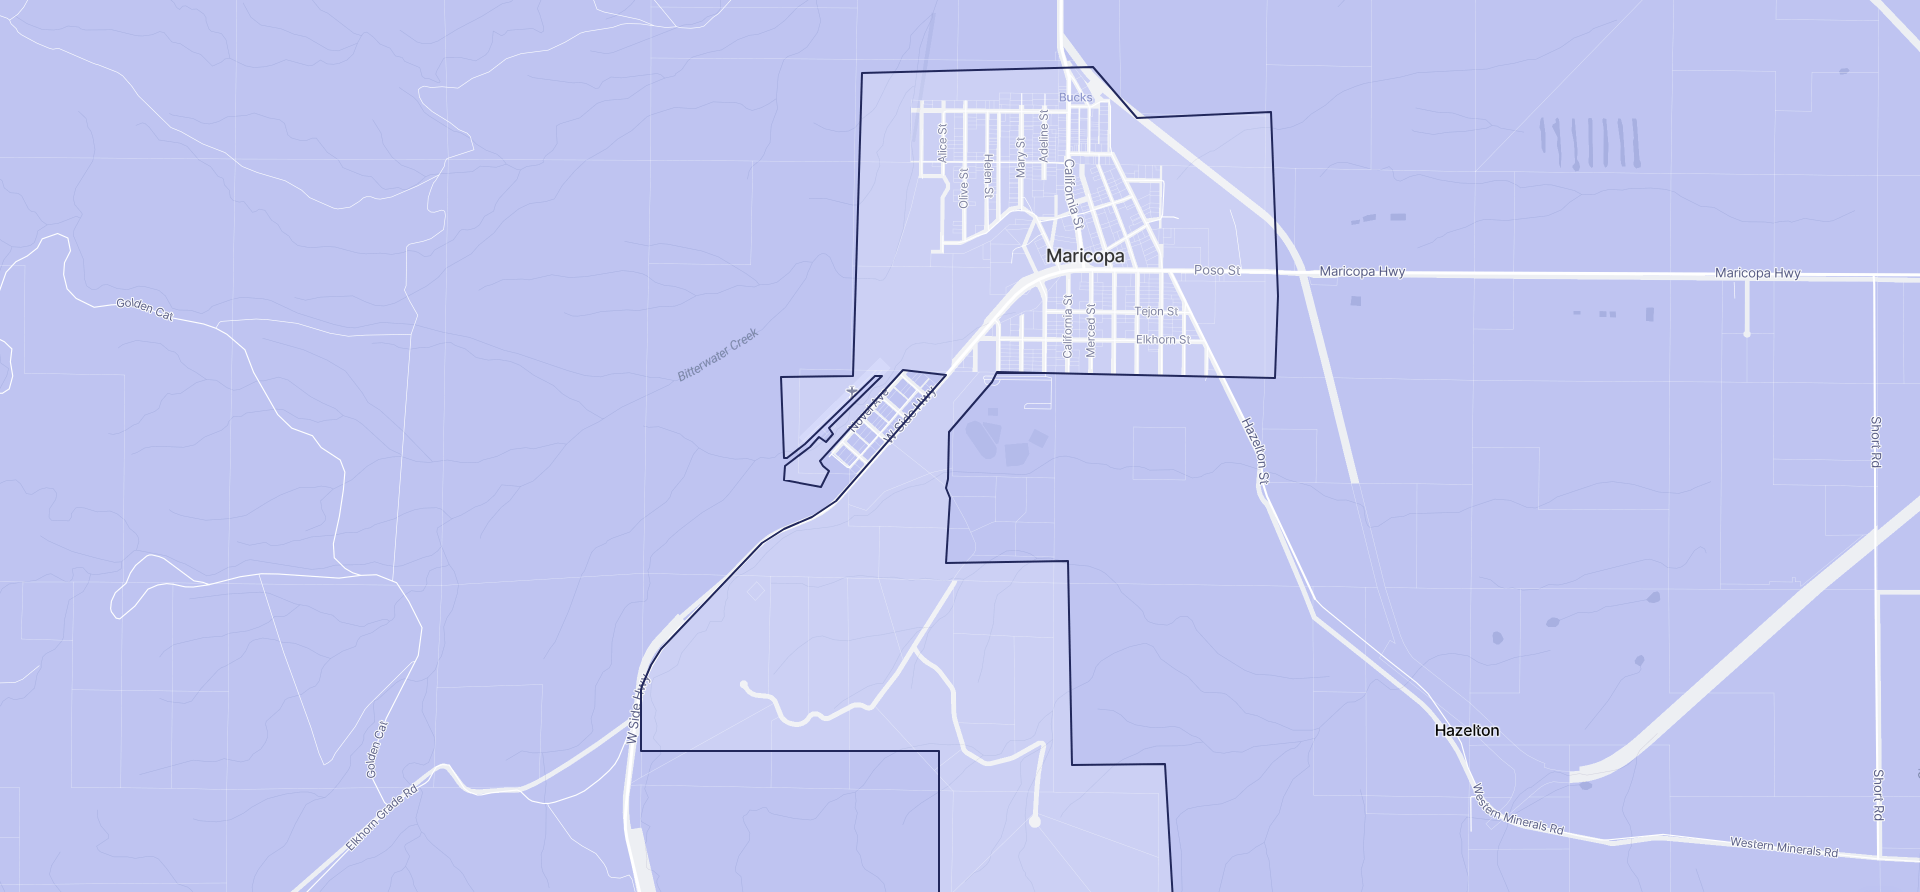 Image of Maricopa boundaries on a map.